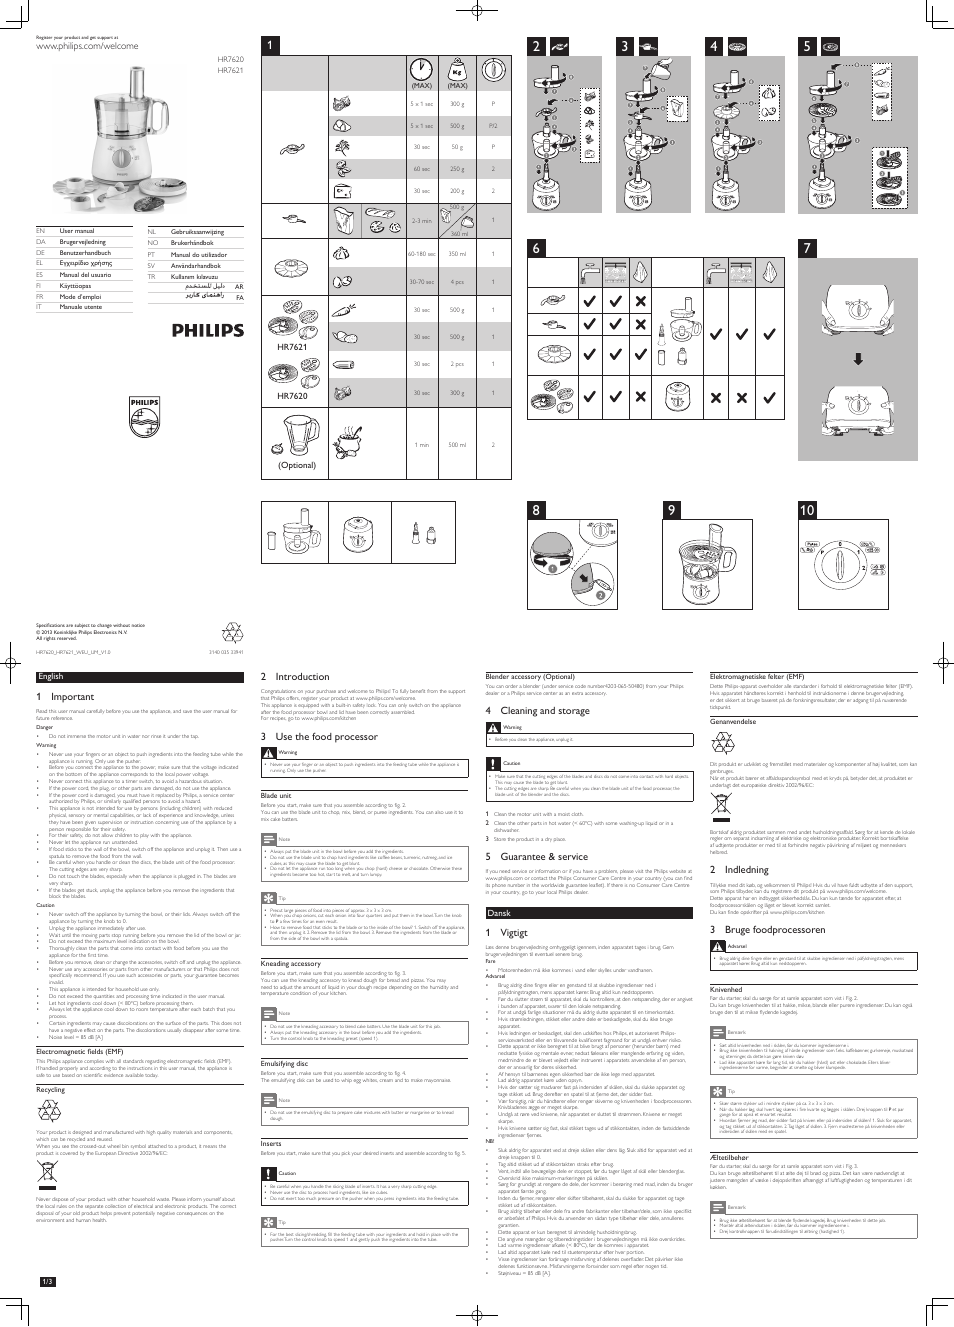 Philips HR7620 User Manual | 6 pages | Also for: Daily Collection Robot de cuisine, Daily Collection Küchenmaschine